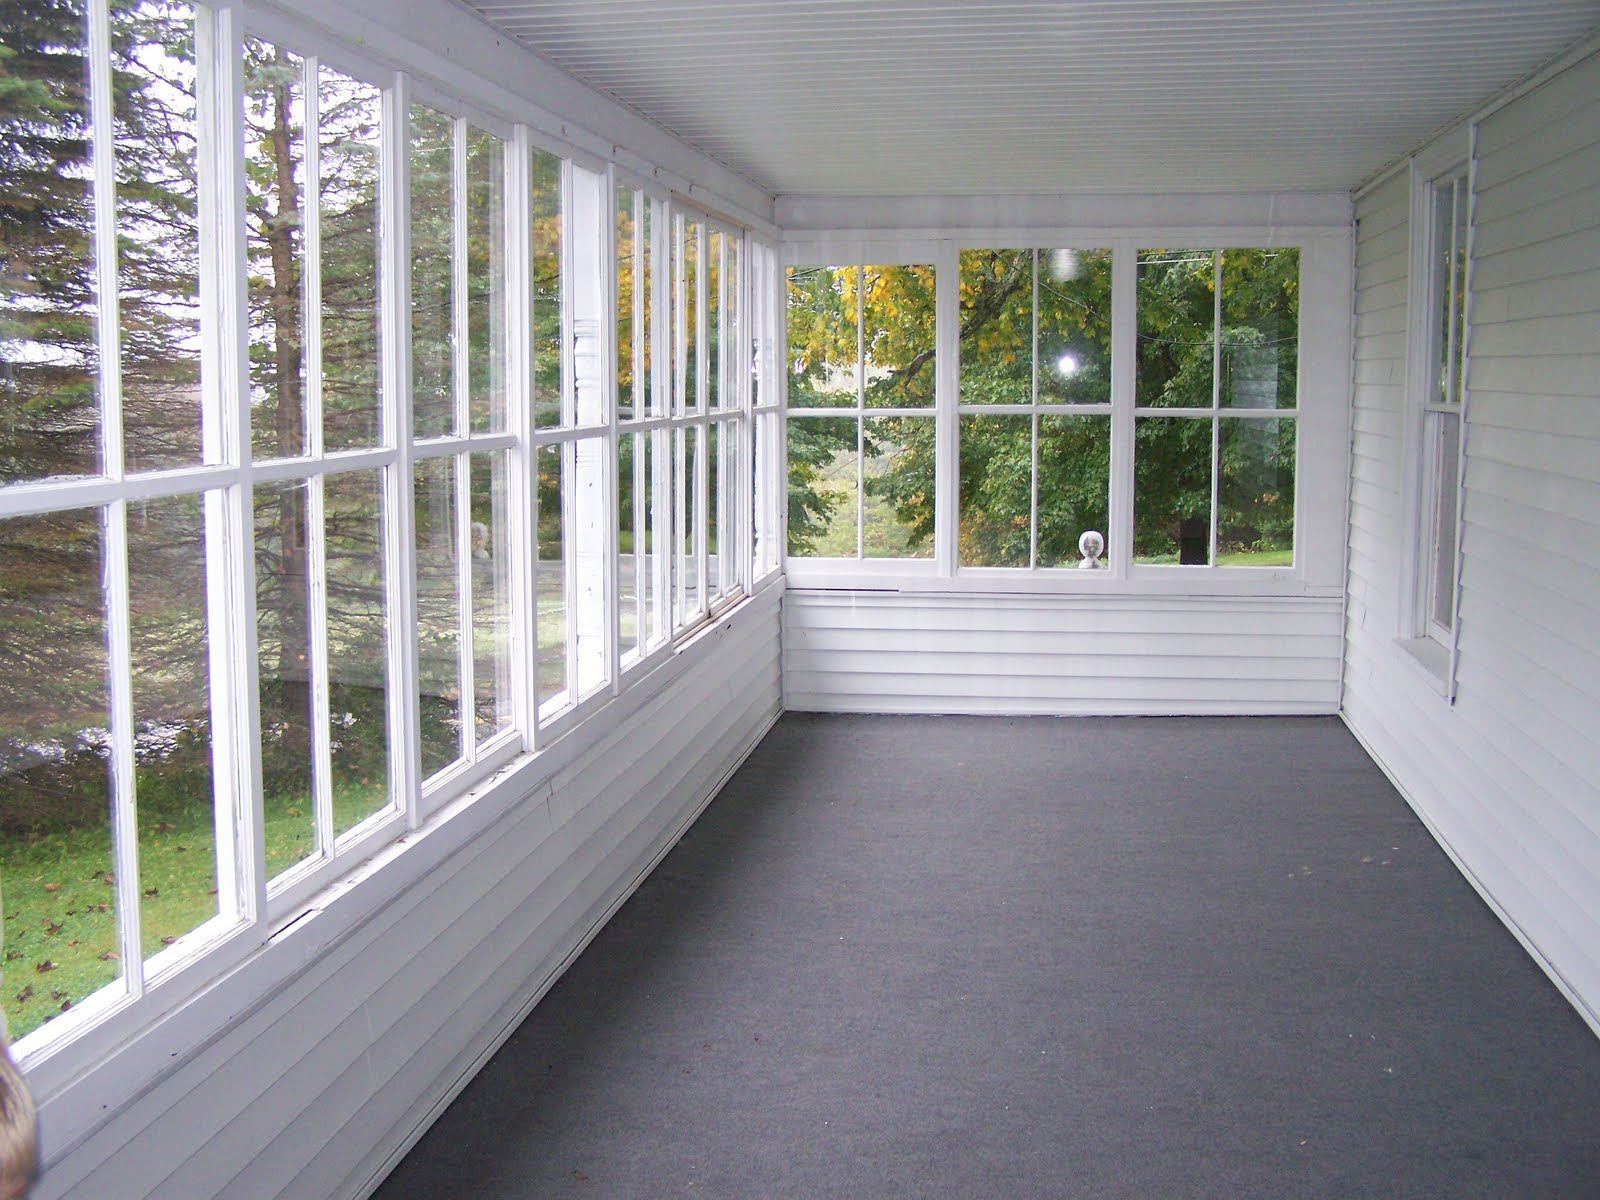 Enclosed porch ideas on pinterest enclosed patio Enclosed patio ideas